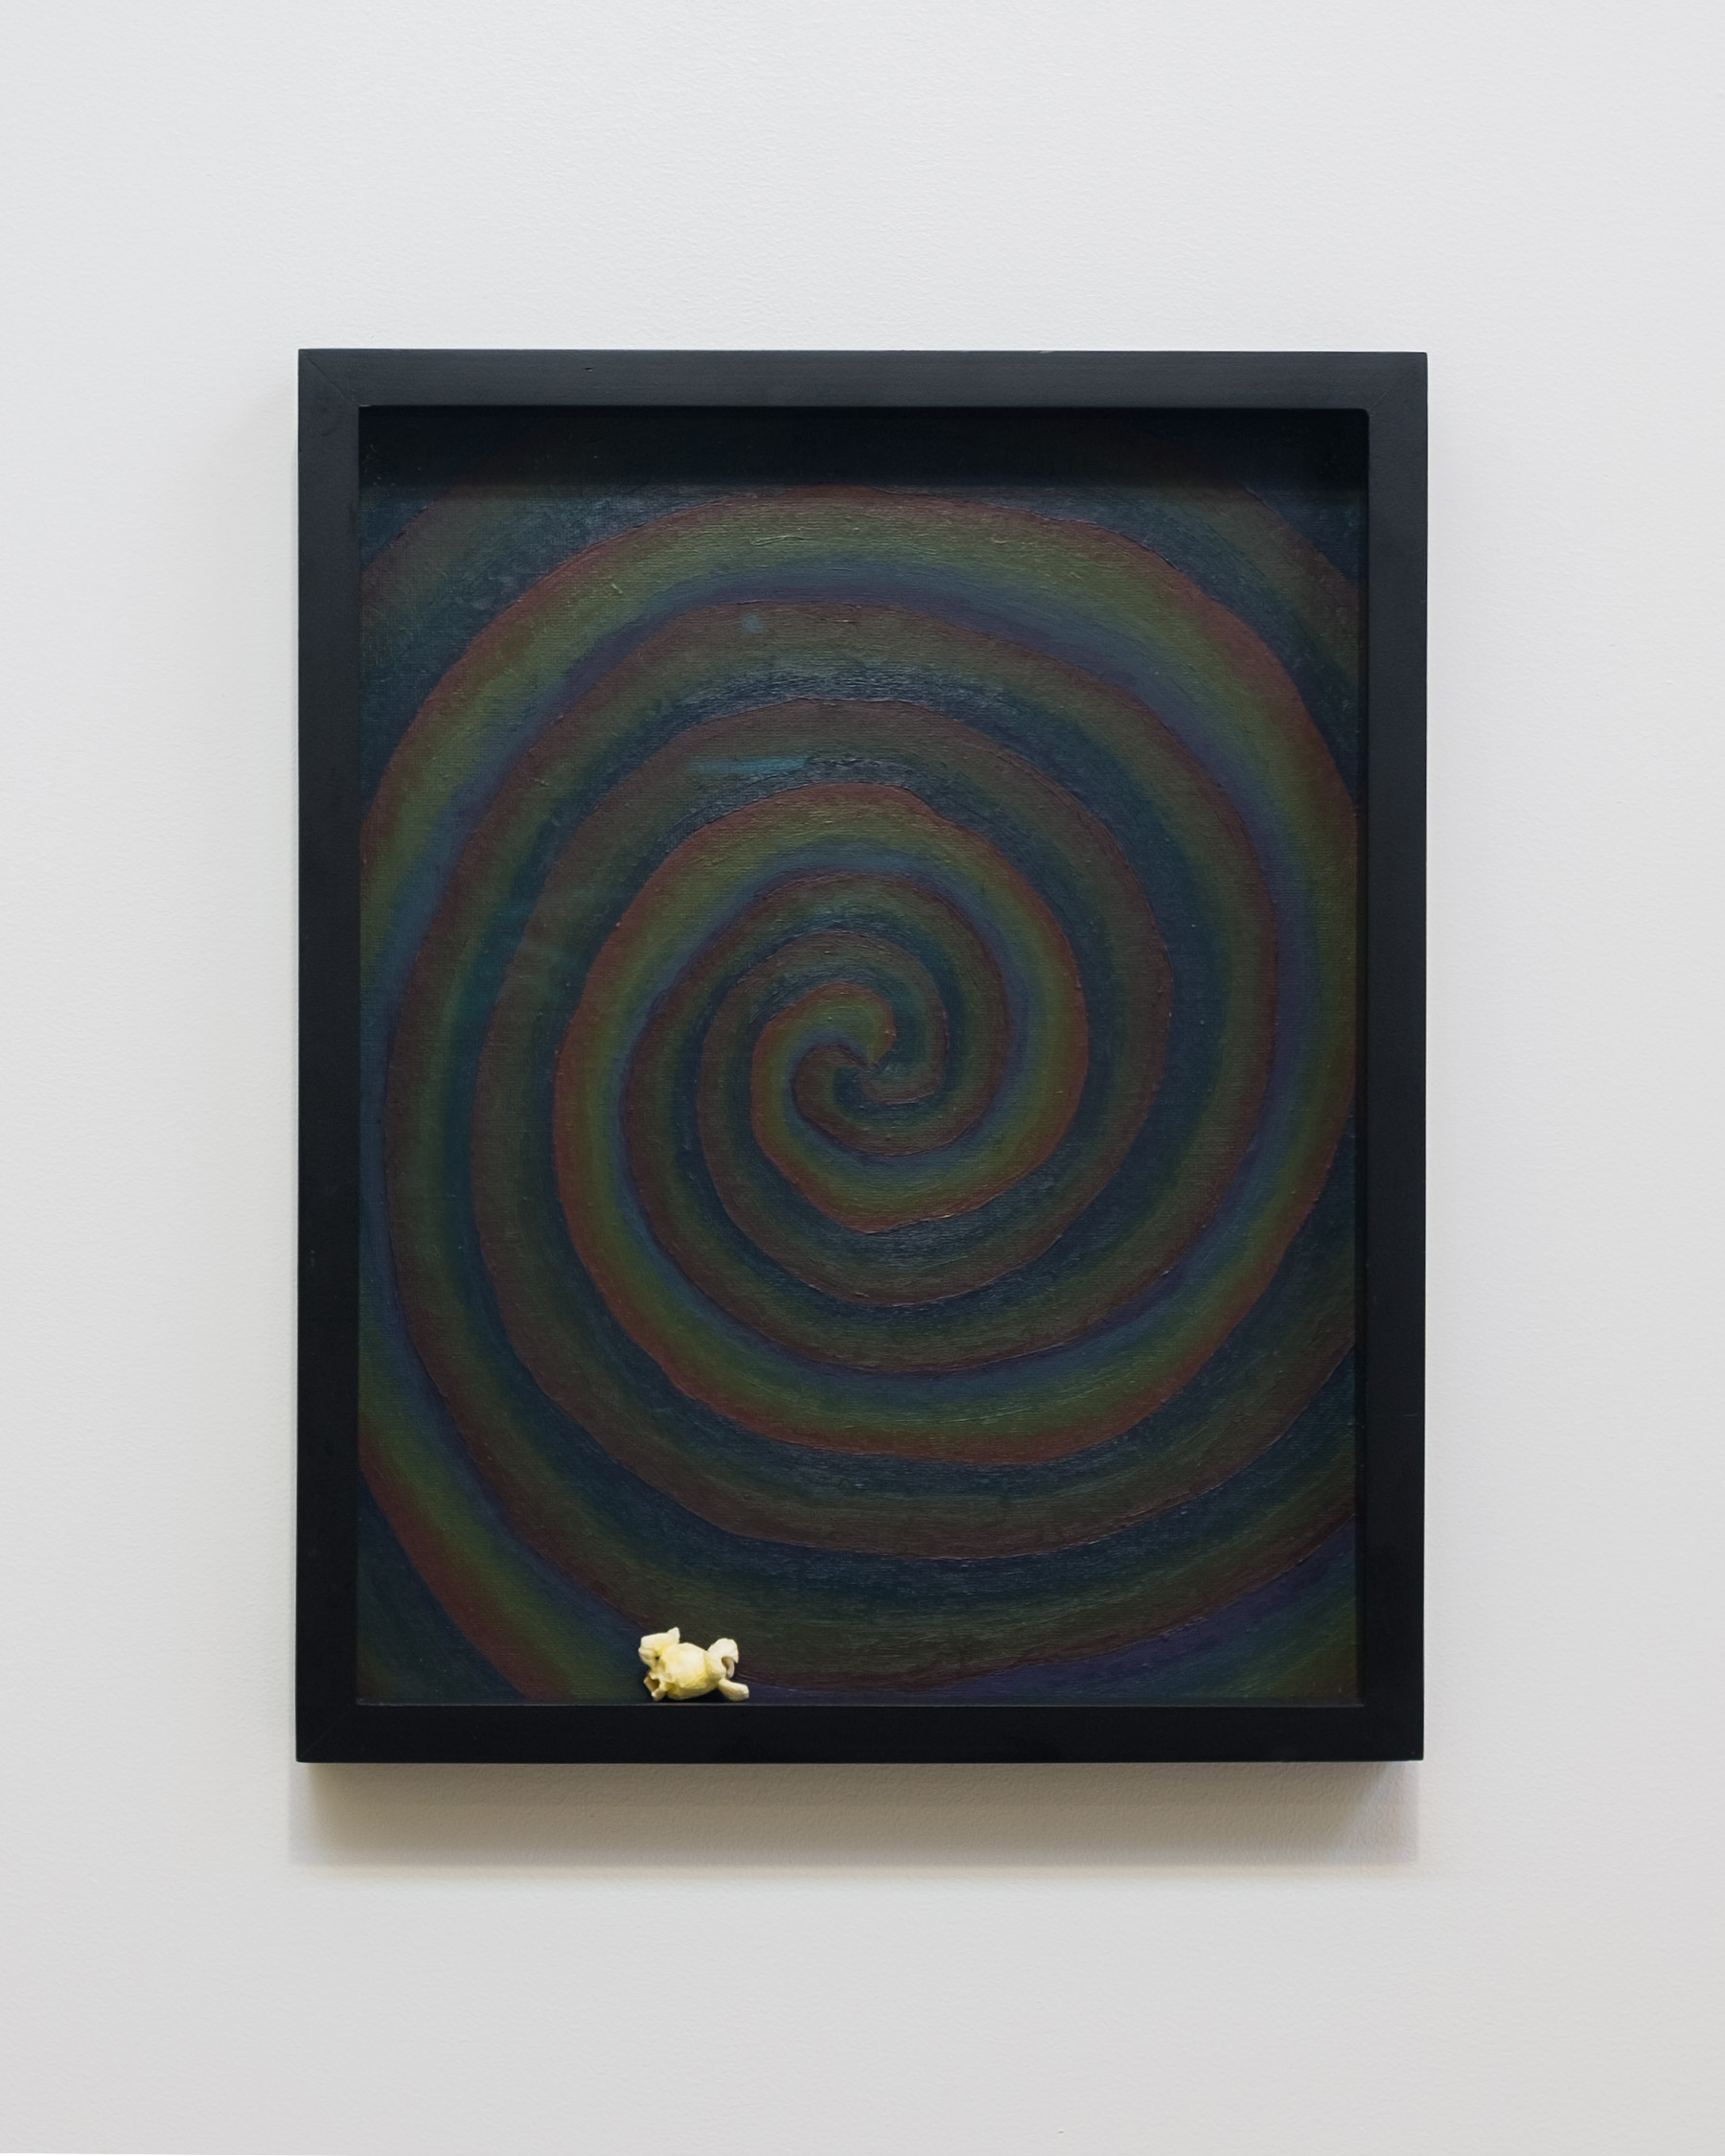 Alex Kwartler, Unititled (with popcorn), 2018, oil on canvas board, popcorn, 14h x 11w in.